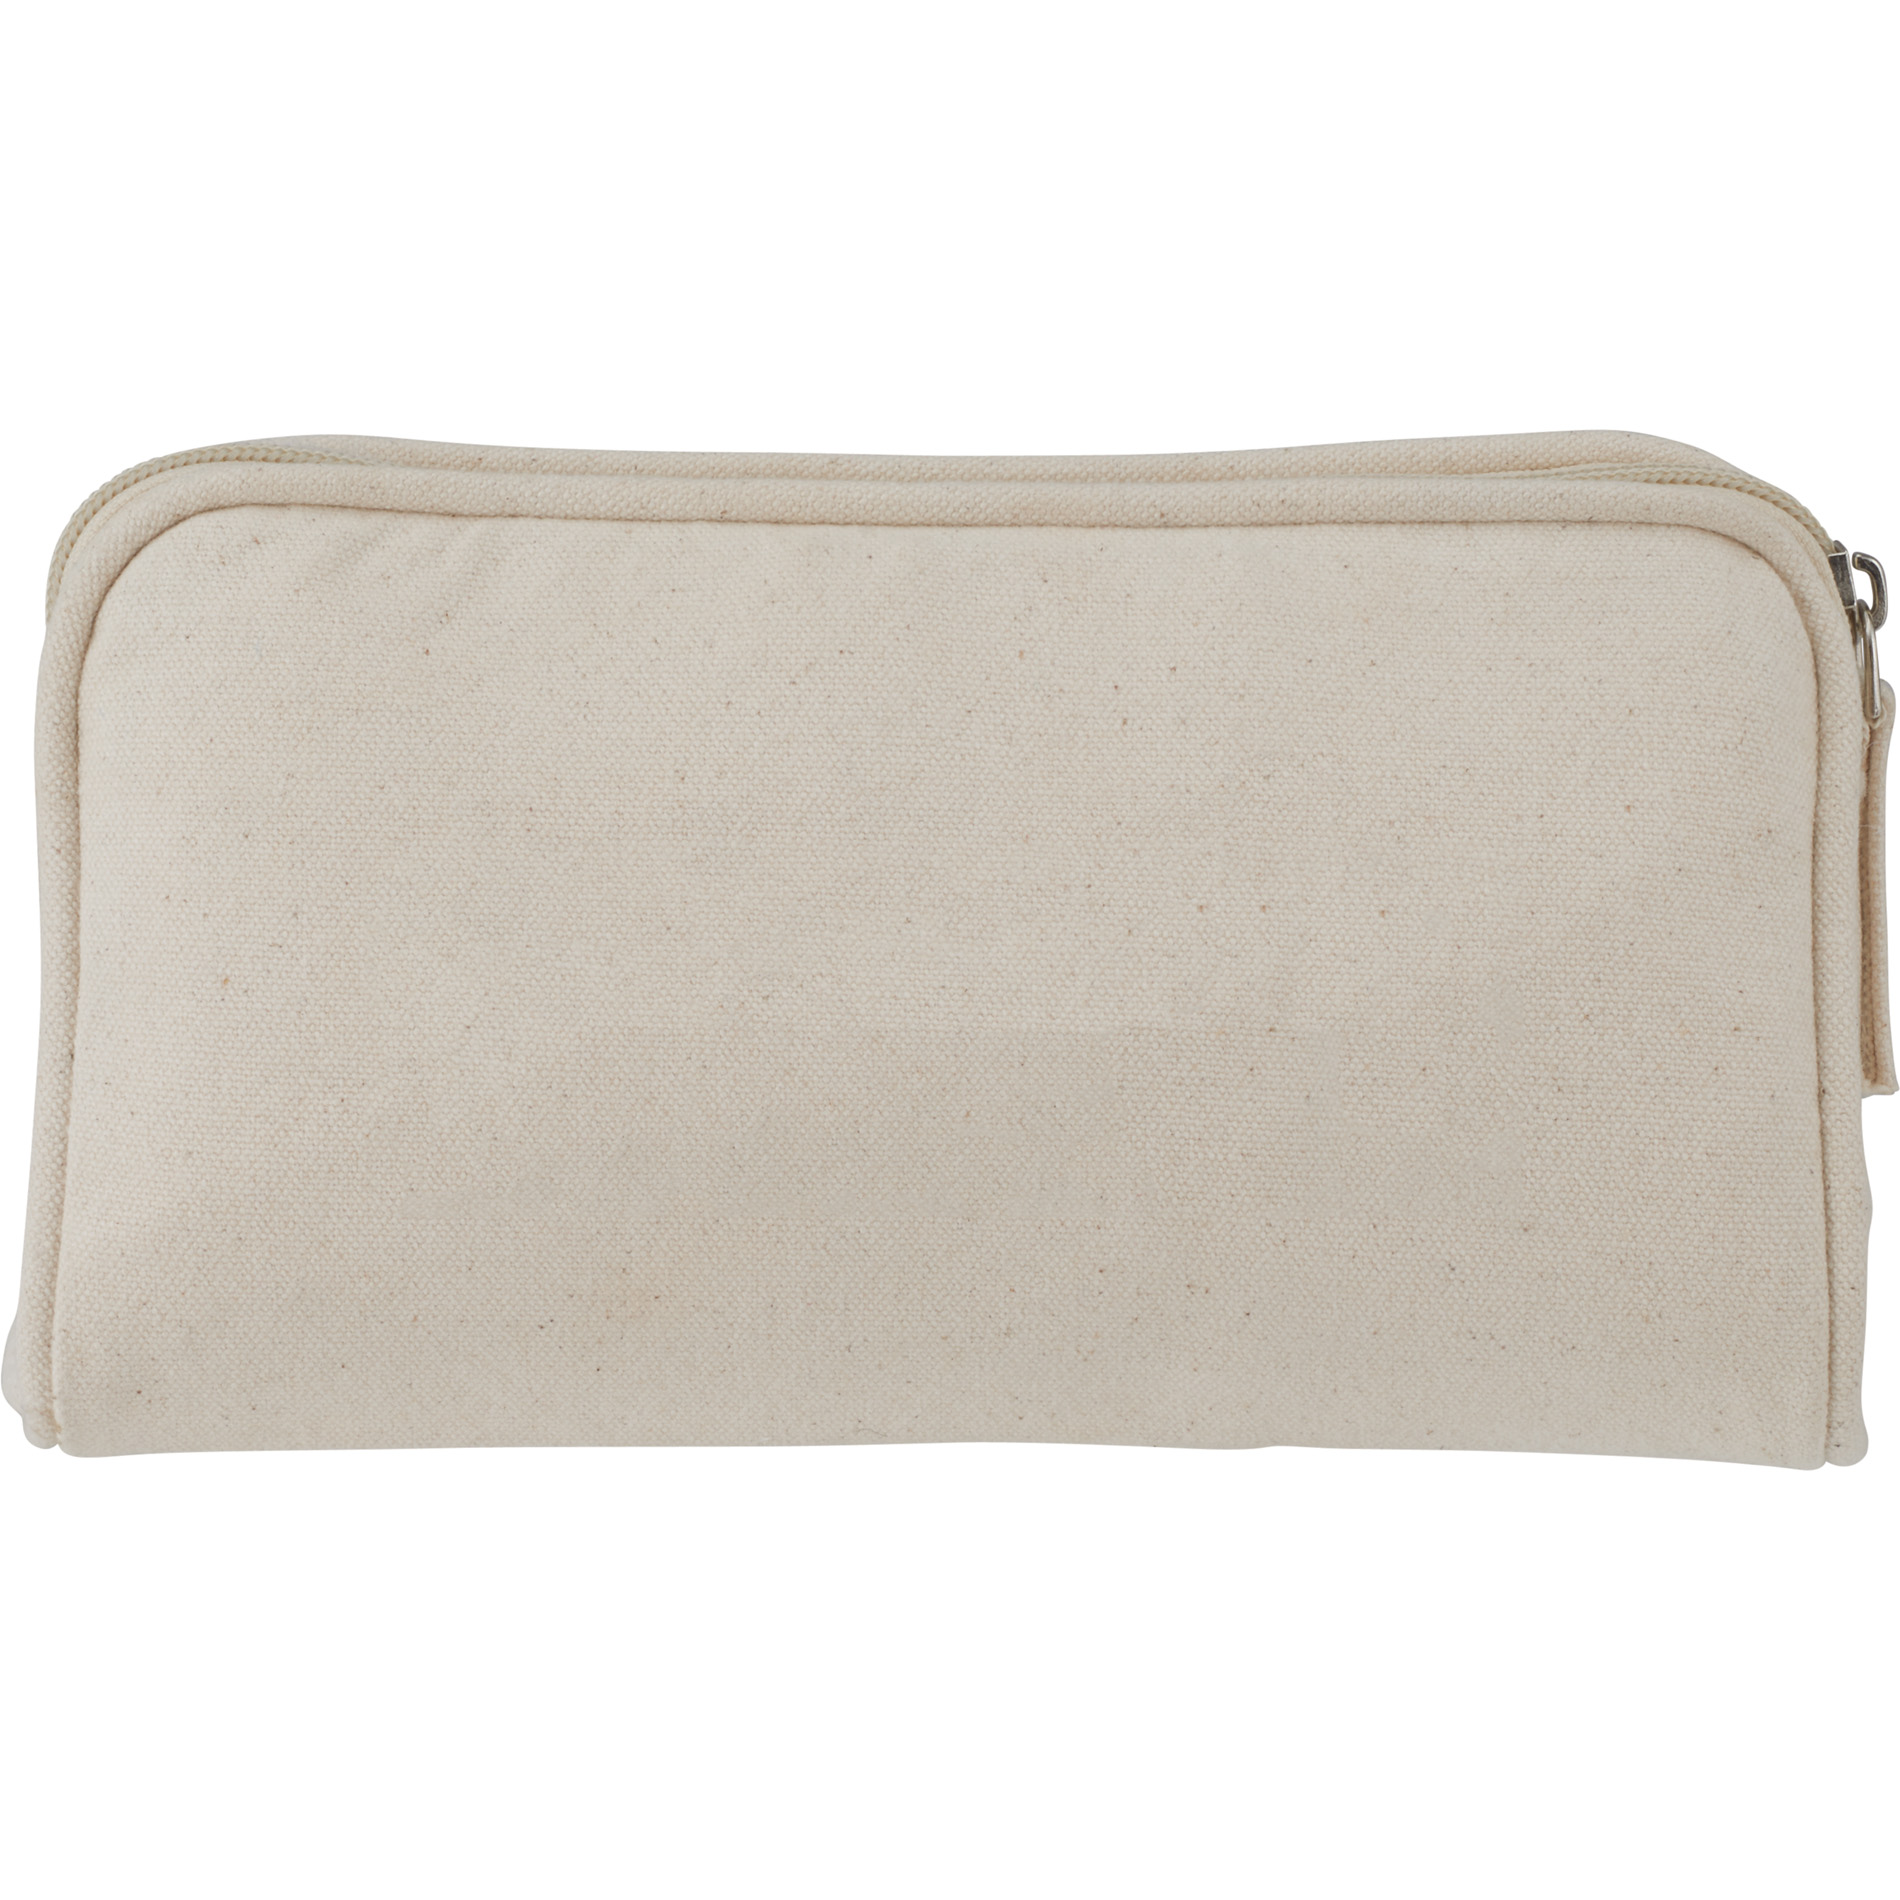 LEEDS 8700-01 - Cotton Travel Pouch